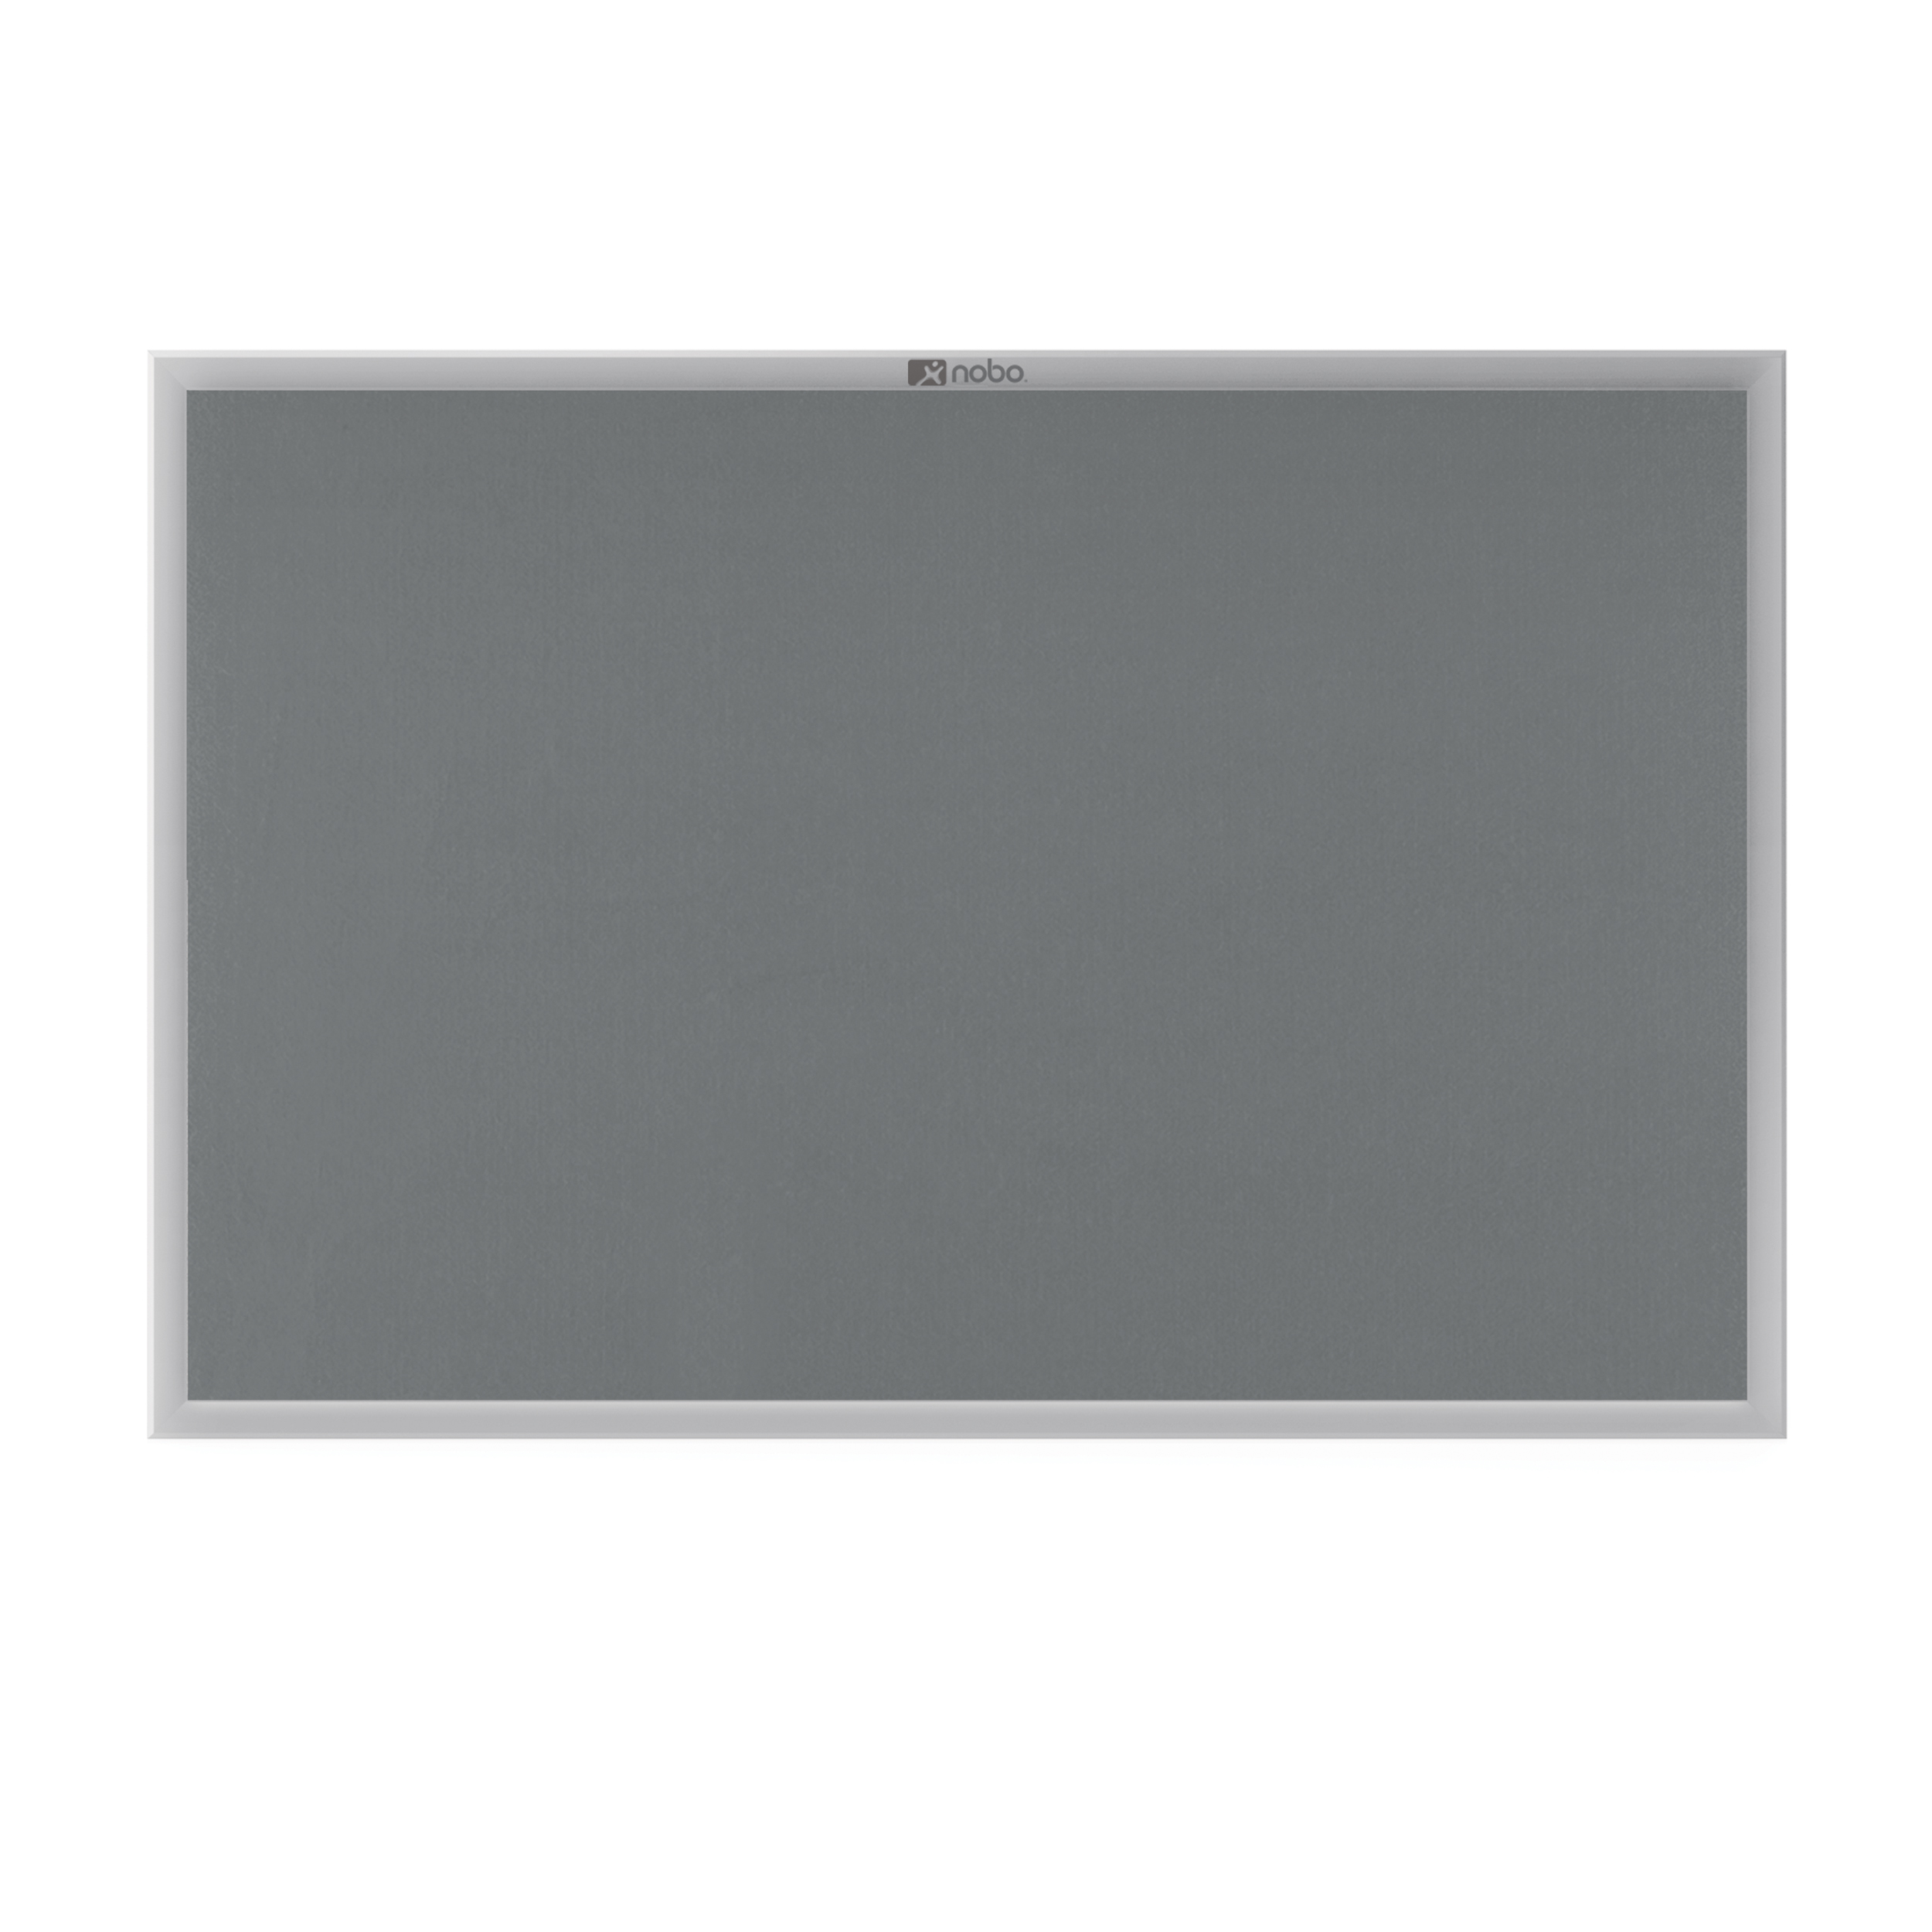 Felt Nobo Europlus Felt Noticeboard with Fixings and Aluminium Frame W900xH600mm Grey Ref 30230157